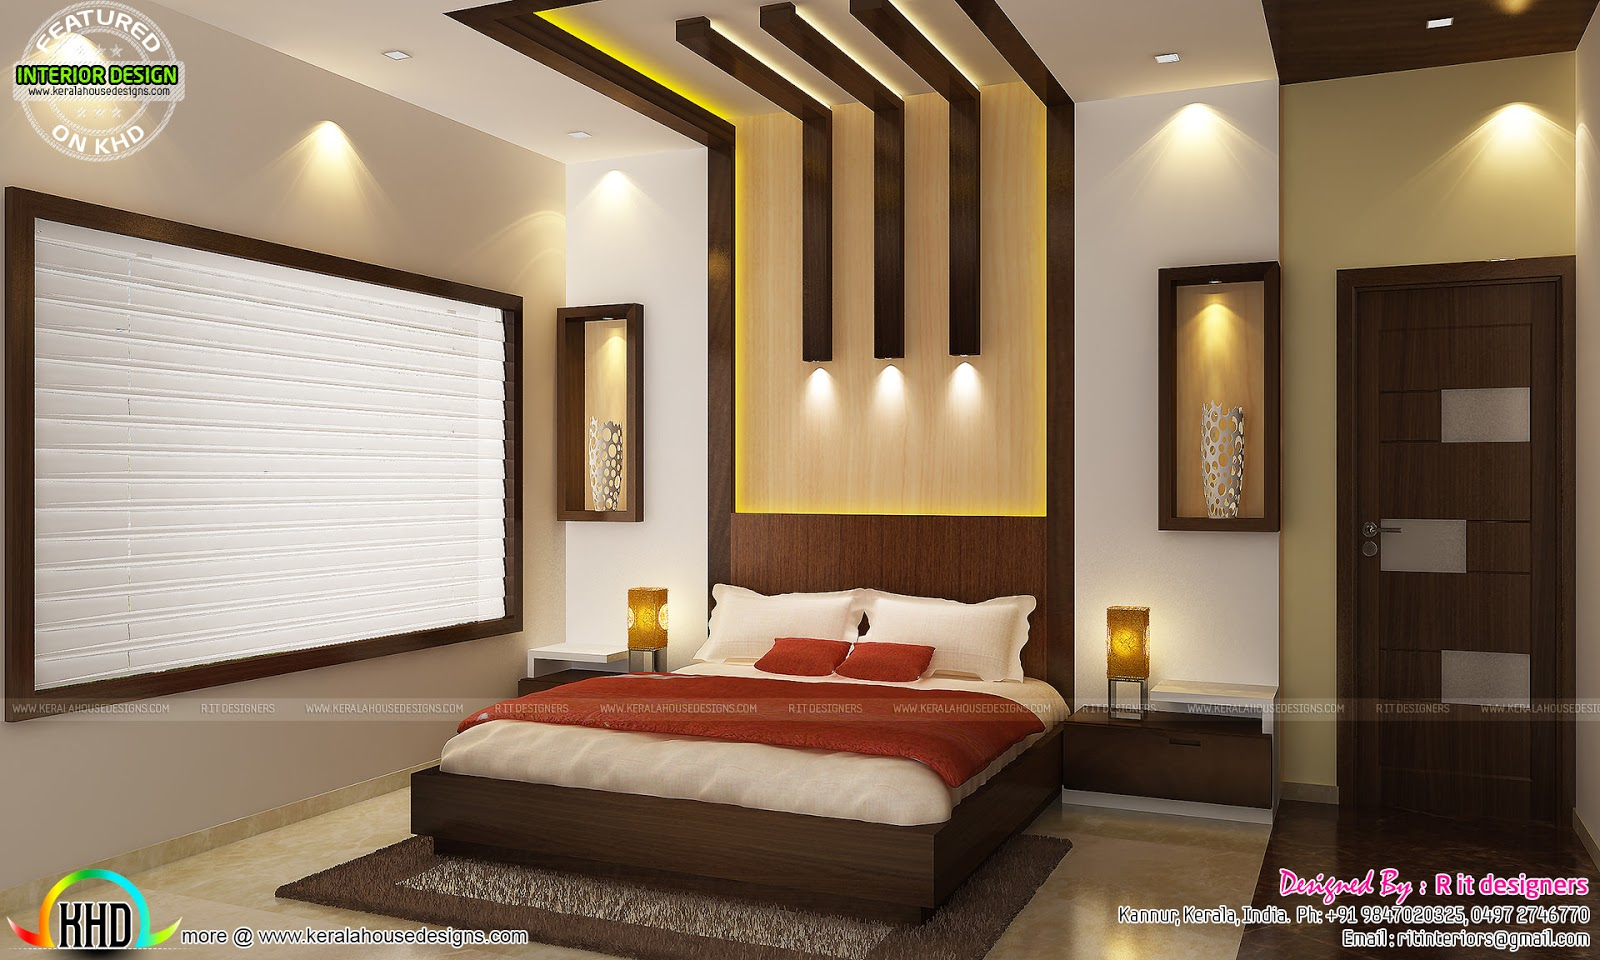 Kitchen living bedroom dining interior decor kerala for Interior home design bedroom ideas